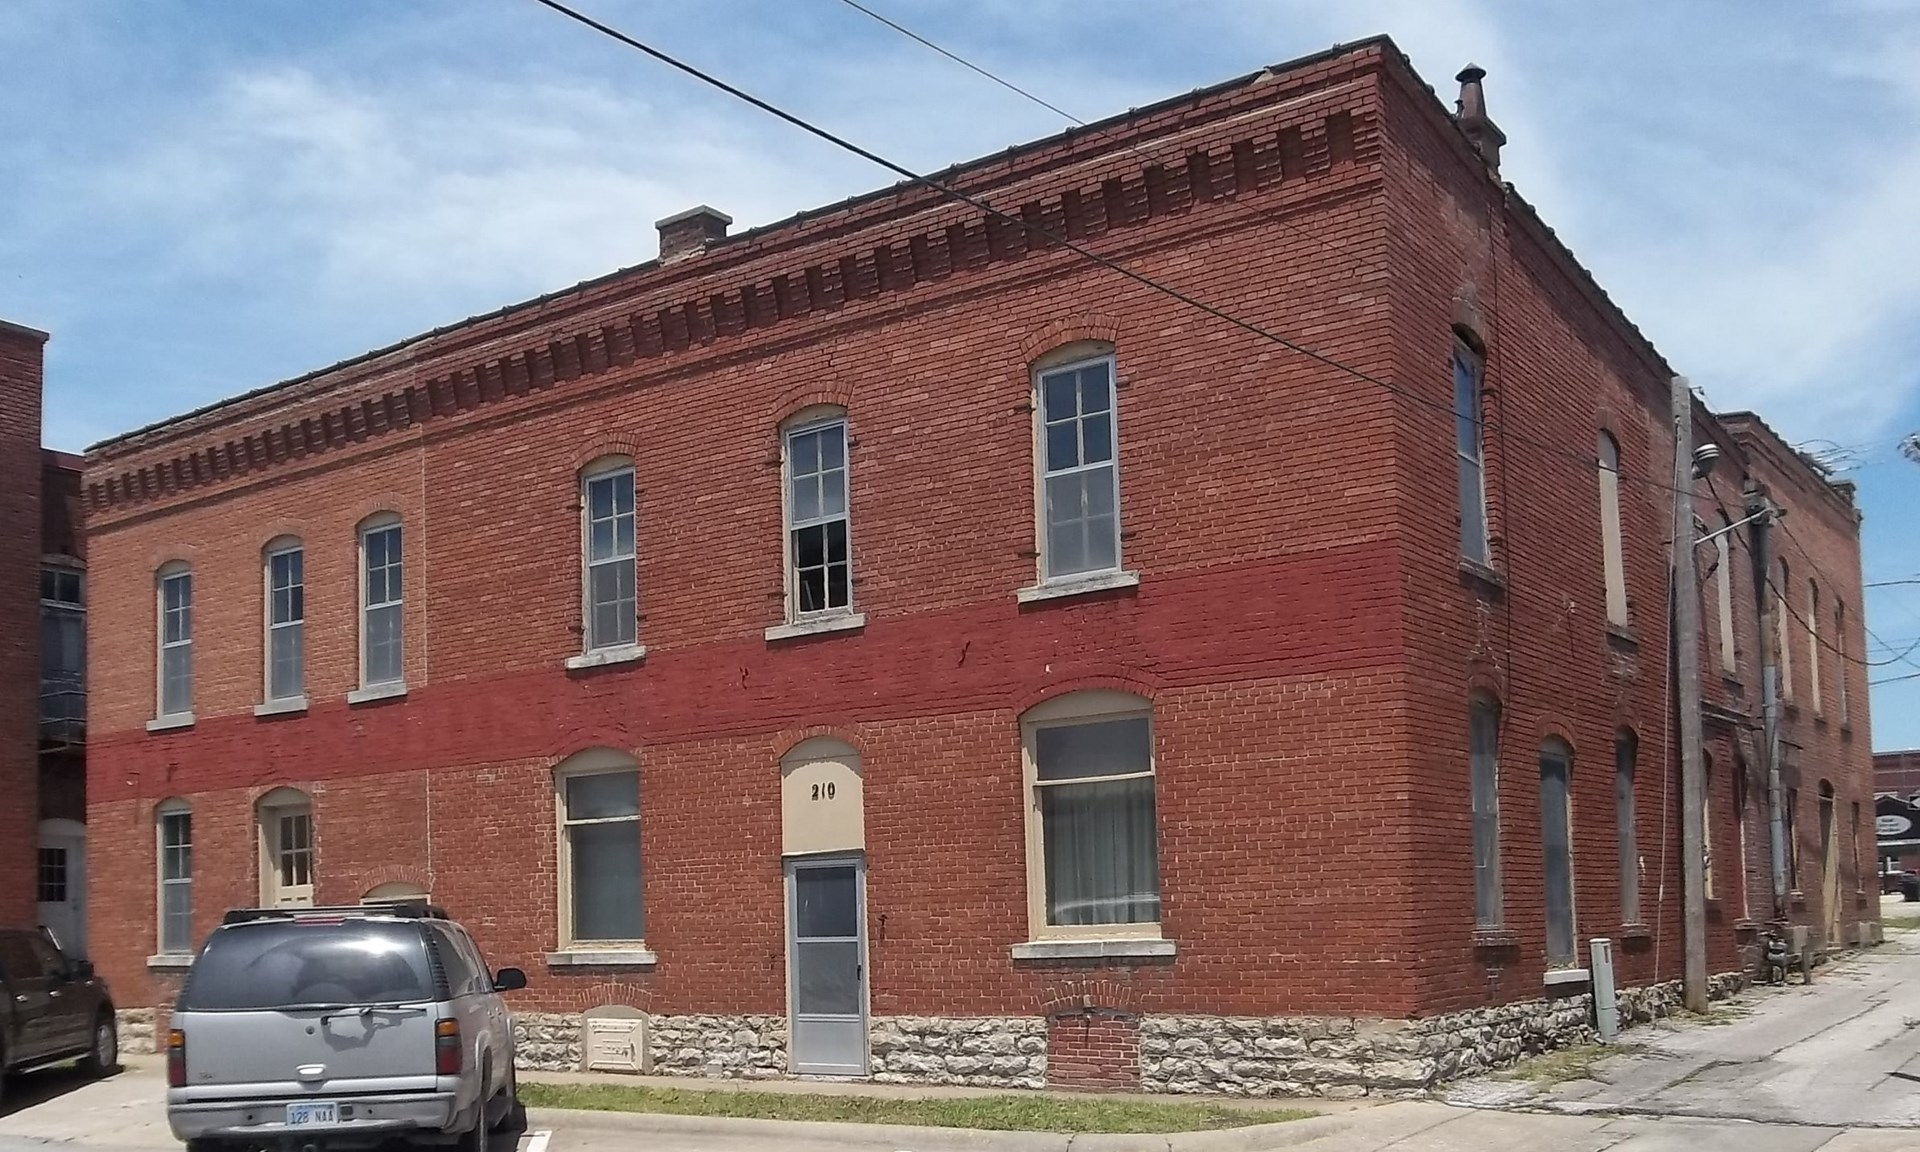 Building for Sale in Chanute, KS